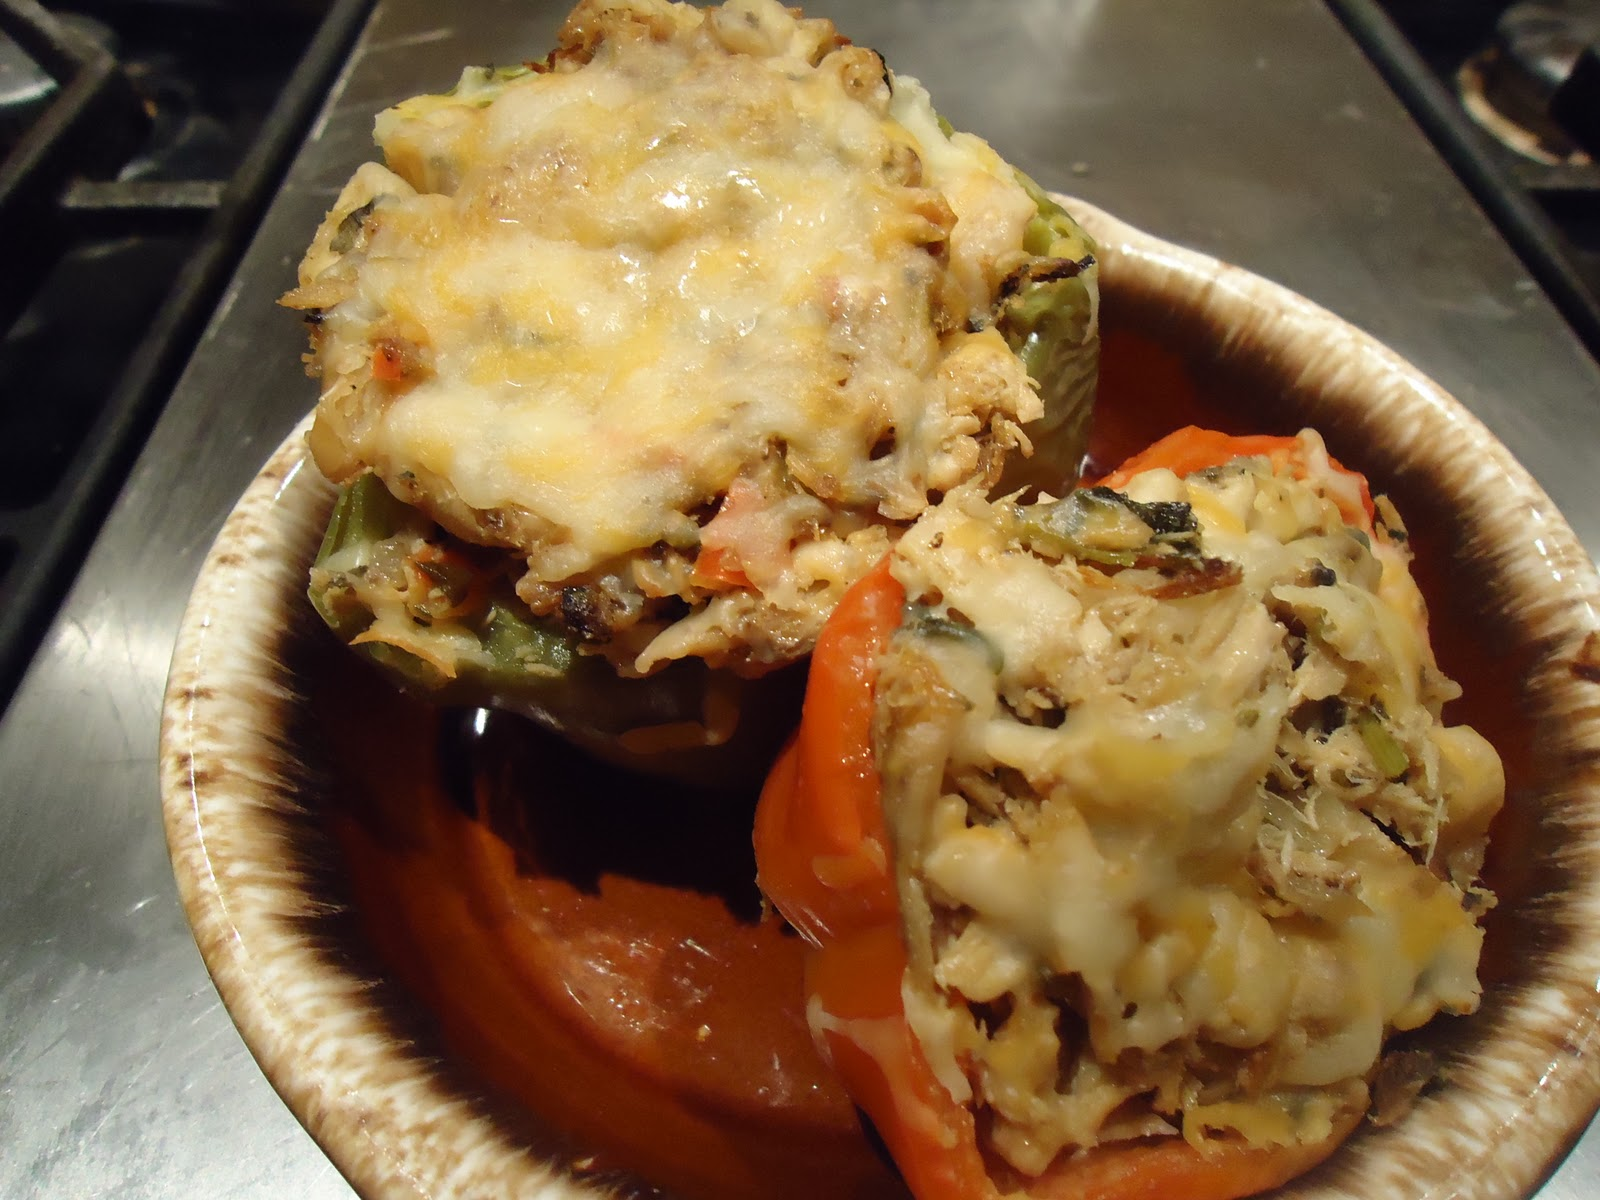 ... the Kitchen: Finally made it! Chicken and White Bean Stuffed Peppers